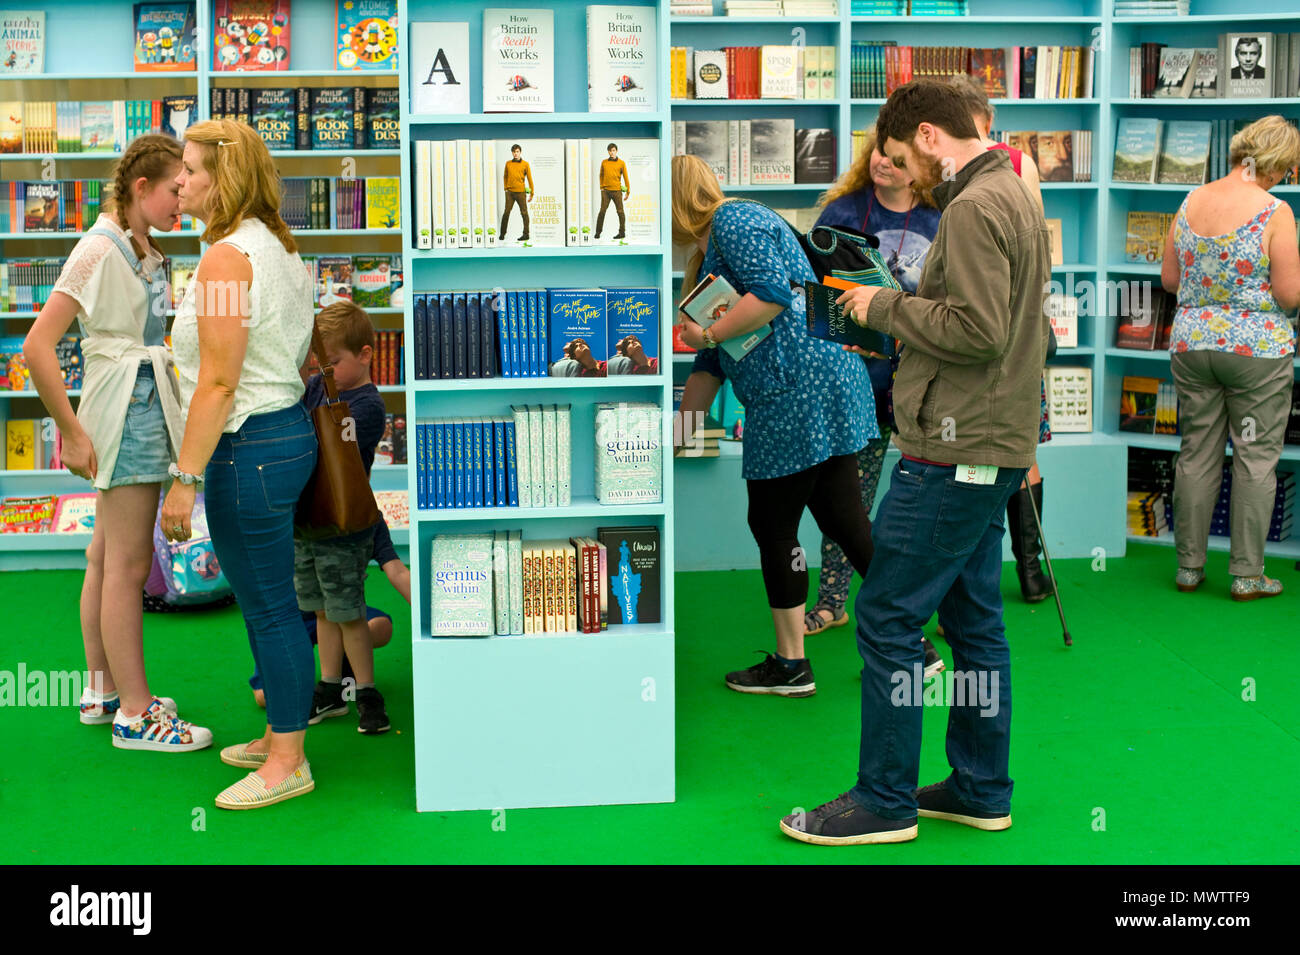 People browsing bookshelves in the bookshop at Hay Festival 2018 Hay-on-Wye Powys Wales UK - Stock Image